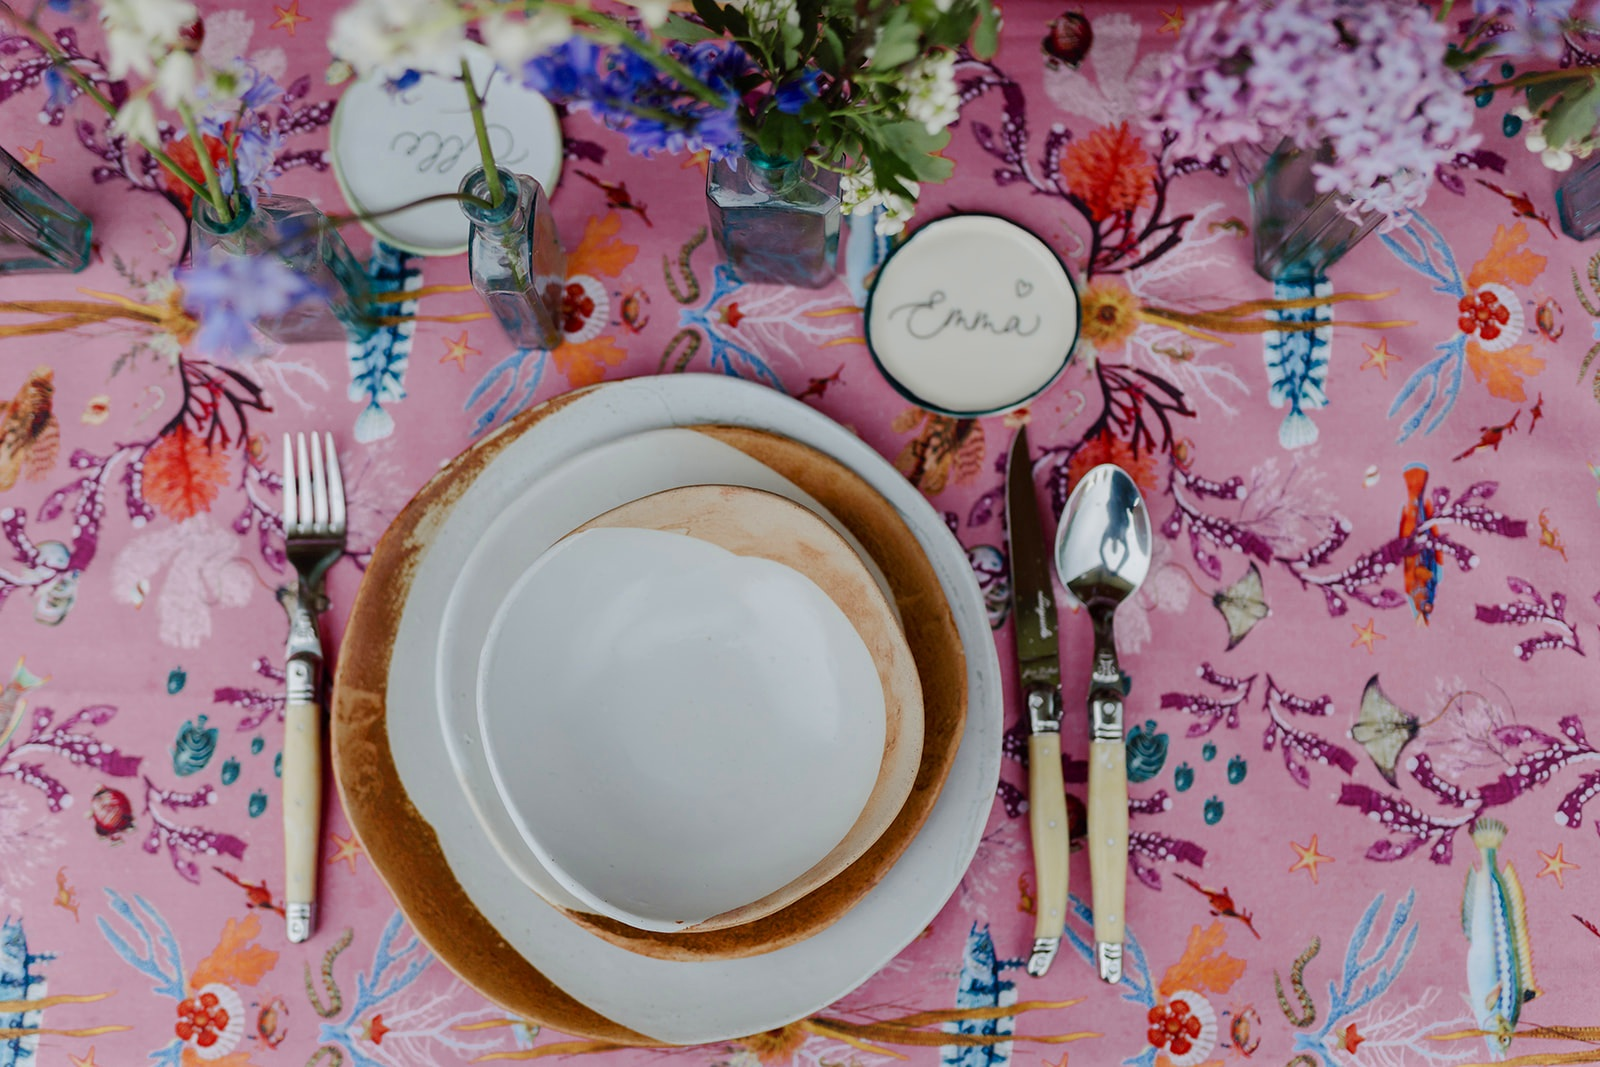 Fortescue Bay in Coral Pink Tablecloth